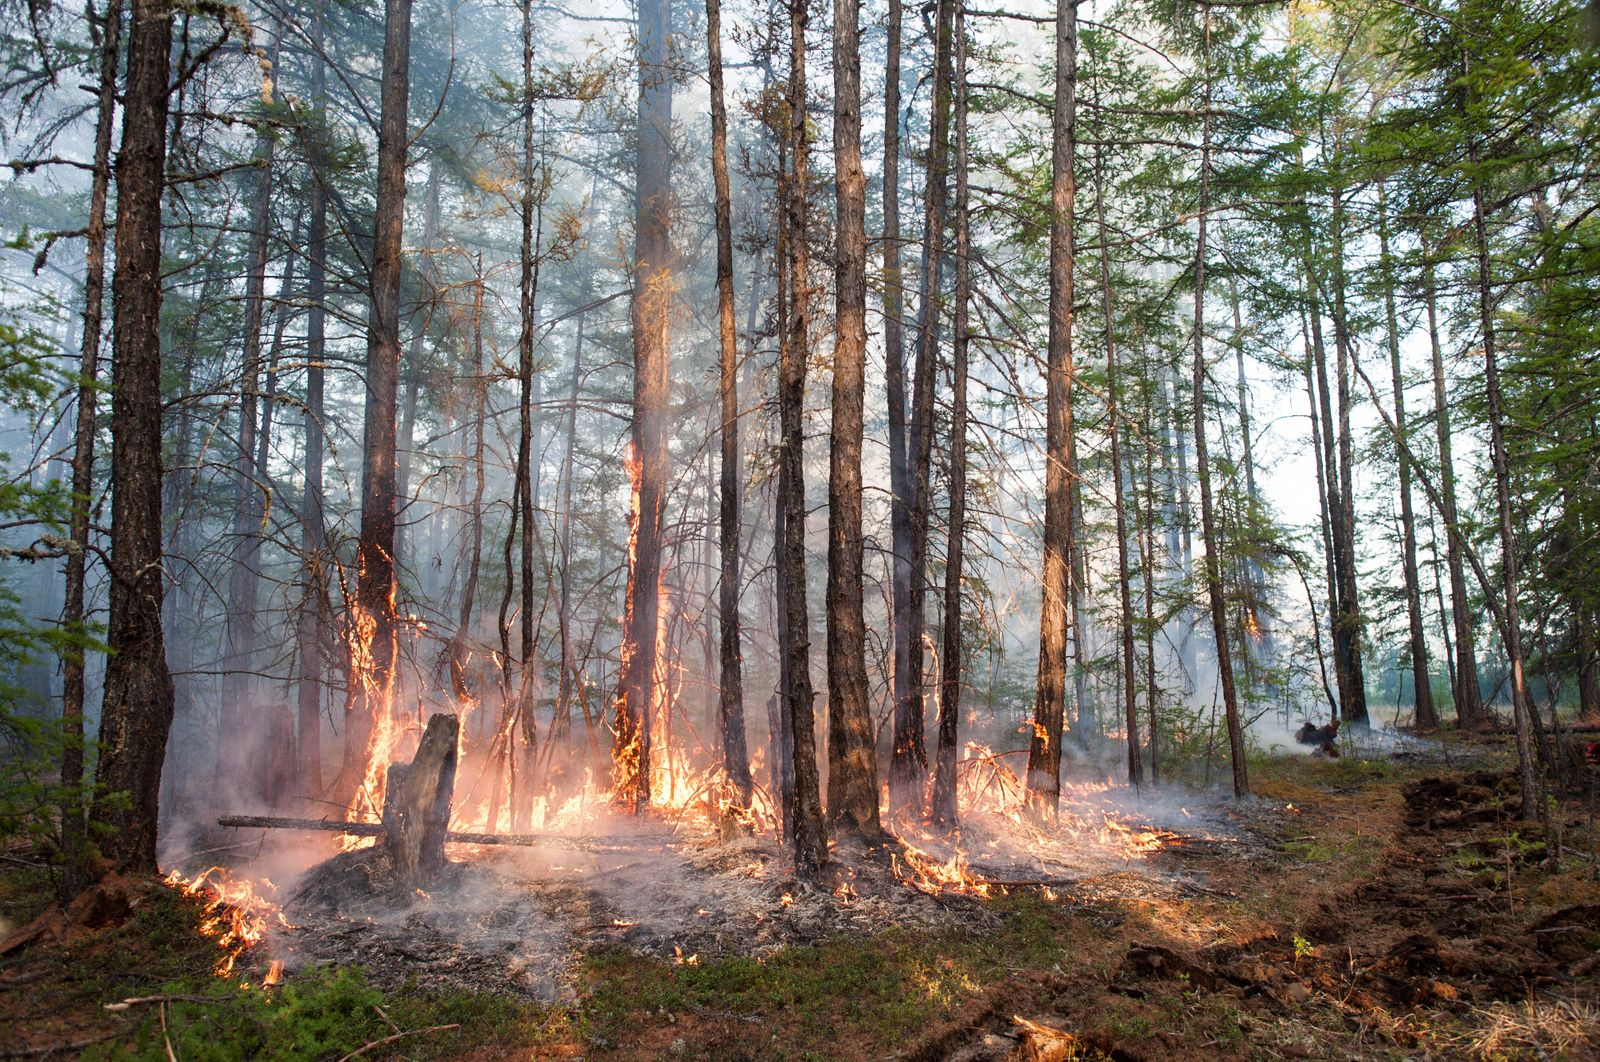 YAKUTIA, RUSSIA - JUNE 2, 2020: A forest fire in central Yakutia (Sakha Republic). Yevgeny Sofroneyev/TASS PUBLICATIONxI